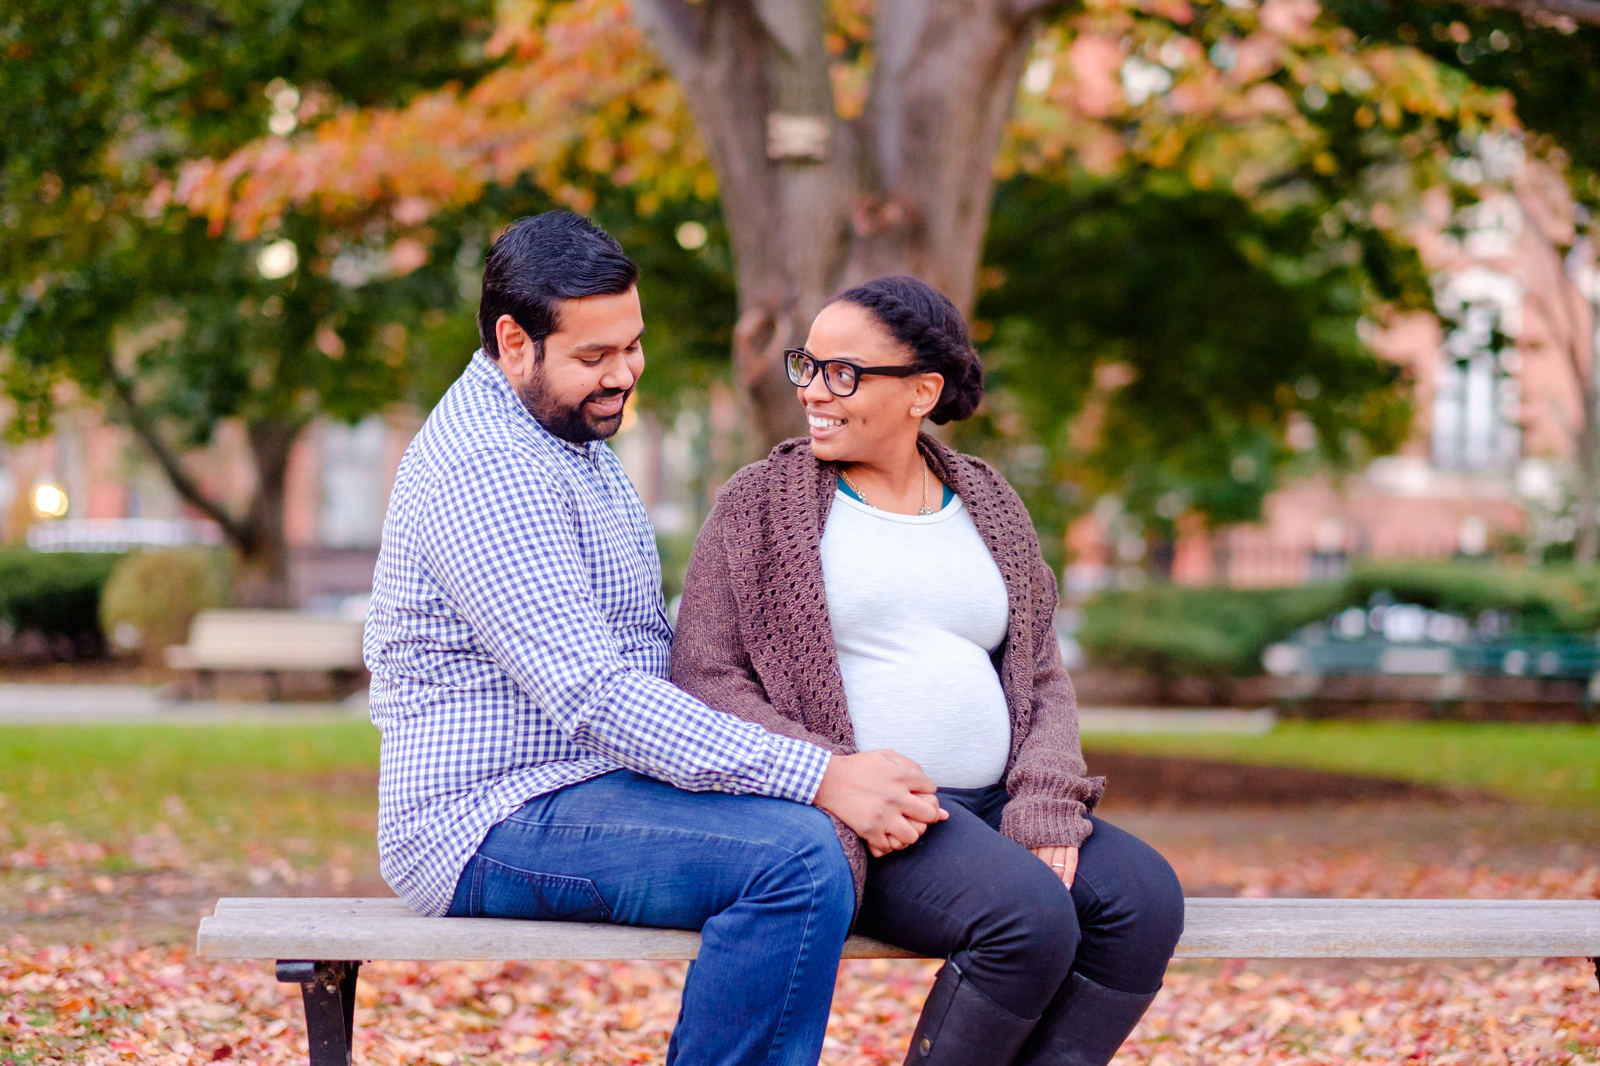 Maternity portraits with couple sitting on a bench holding hands in a fall park setting